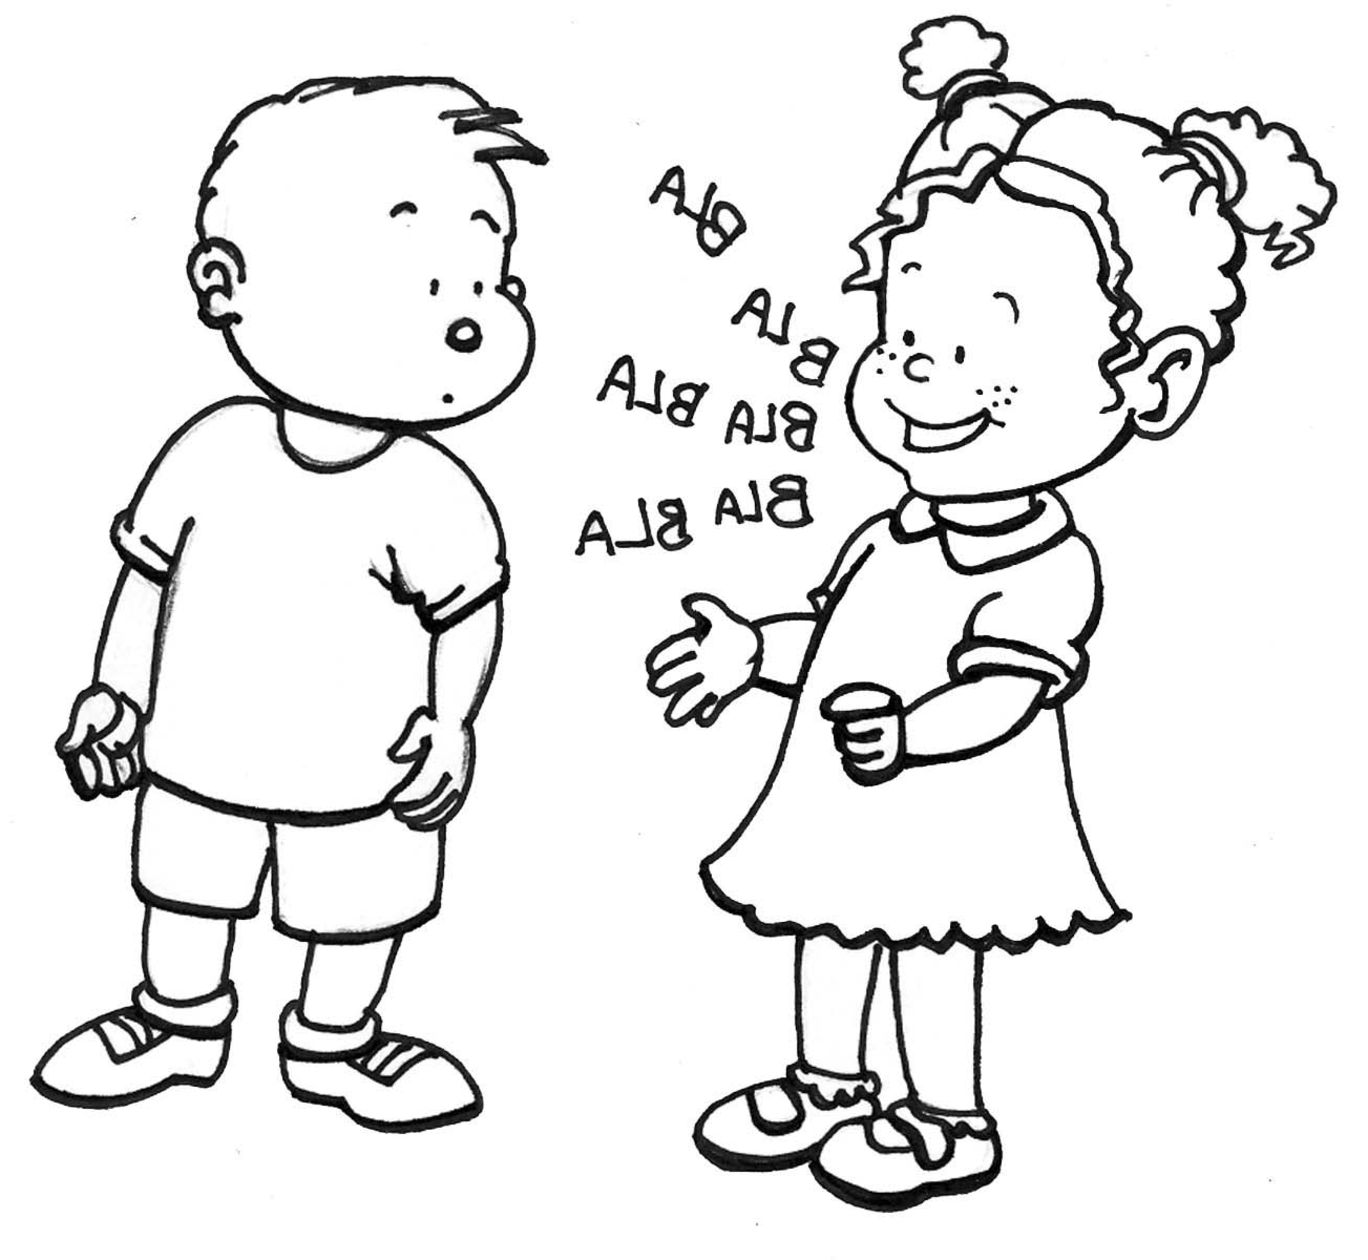 school children coloring pages - photo#20